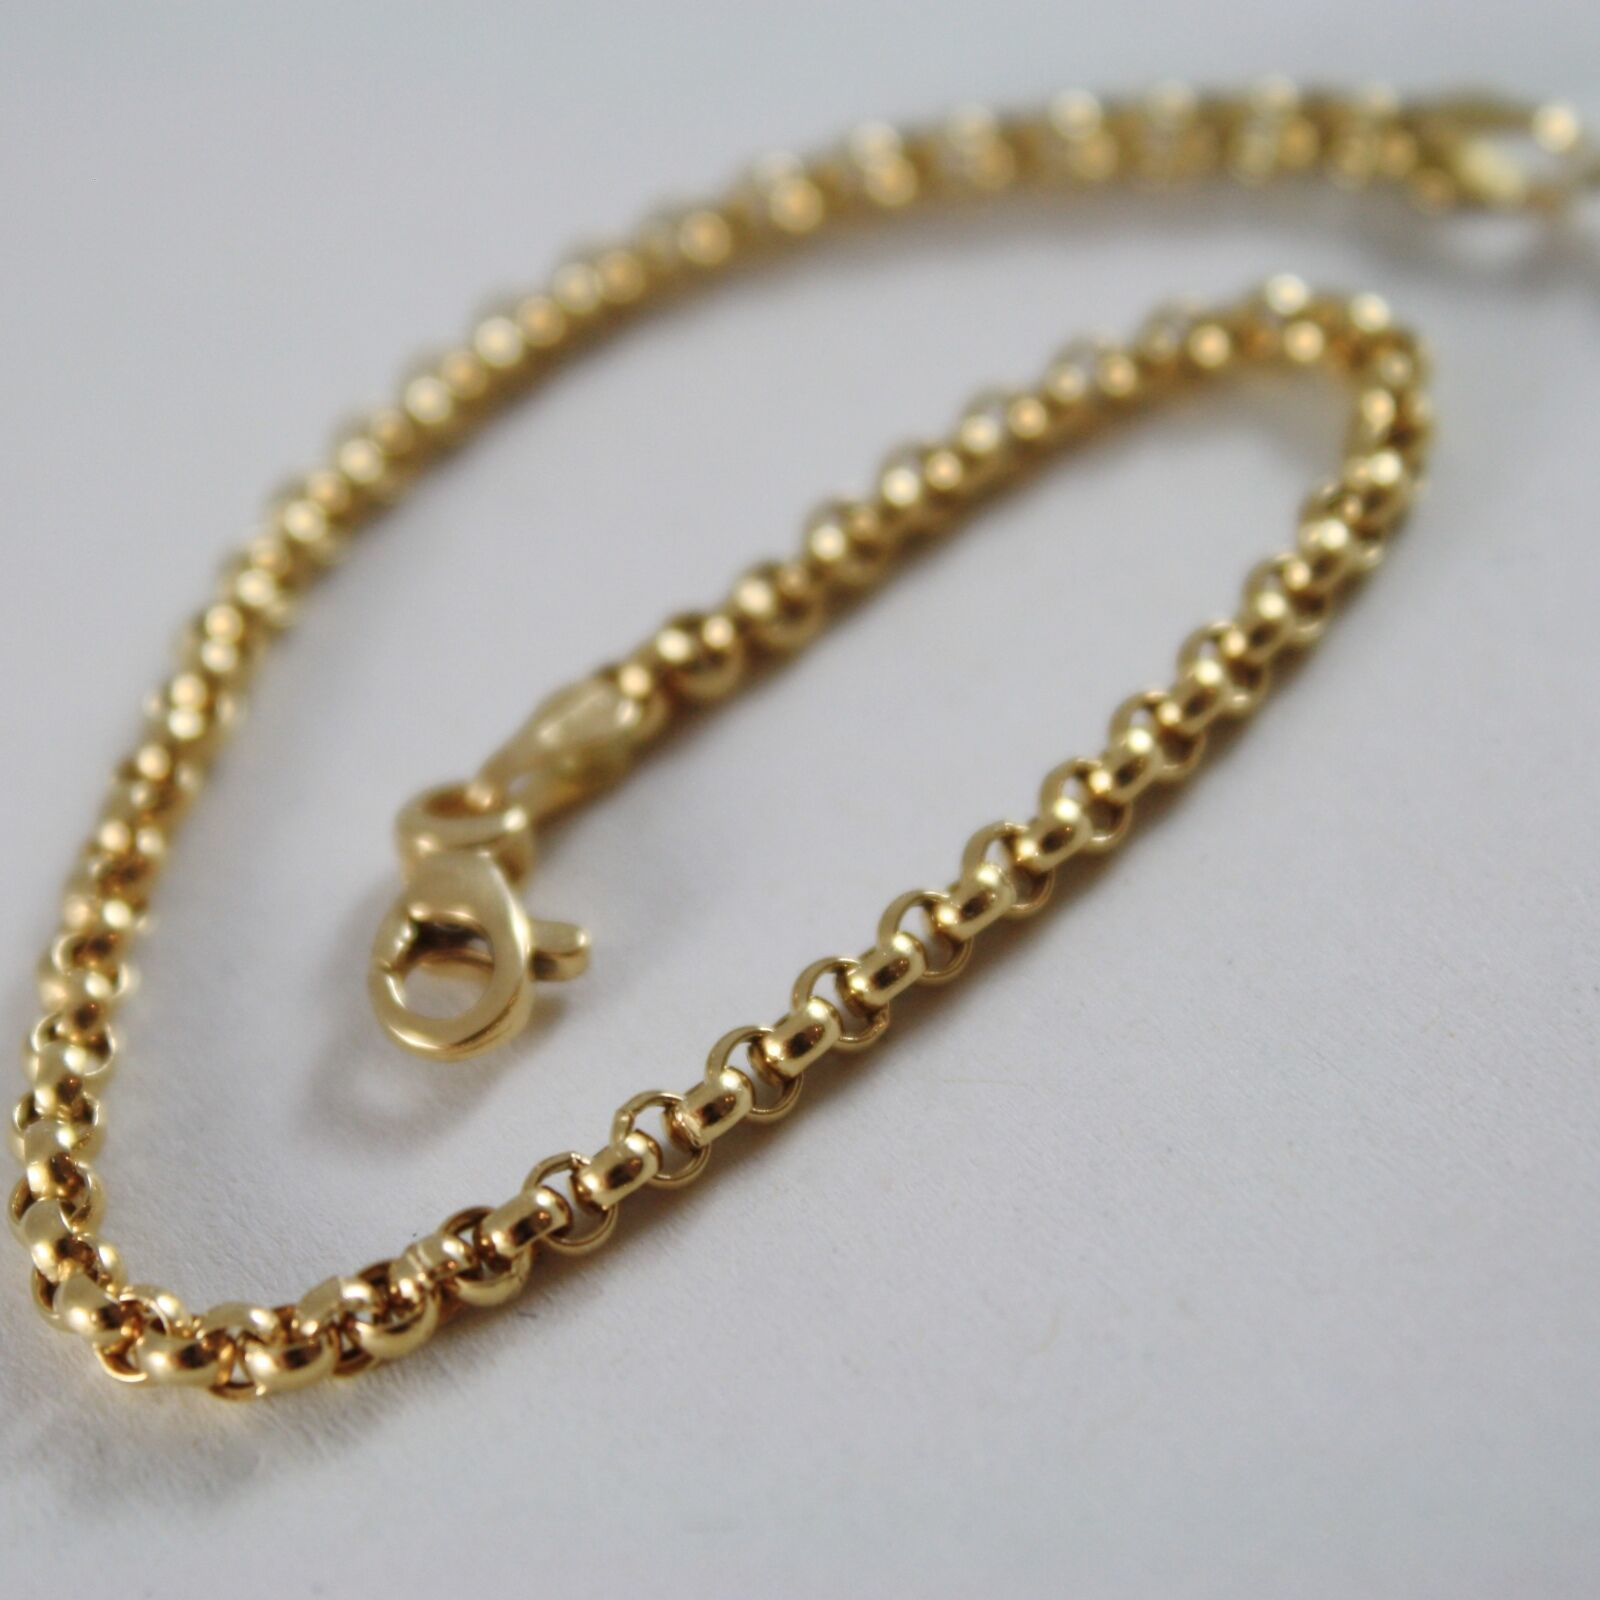 Bracelet Yellow Gold or White 750 18k Rolo ' , Circles 2.5 mm, 19 cm,